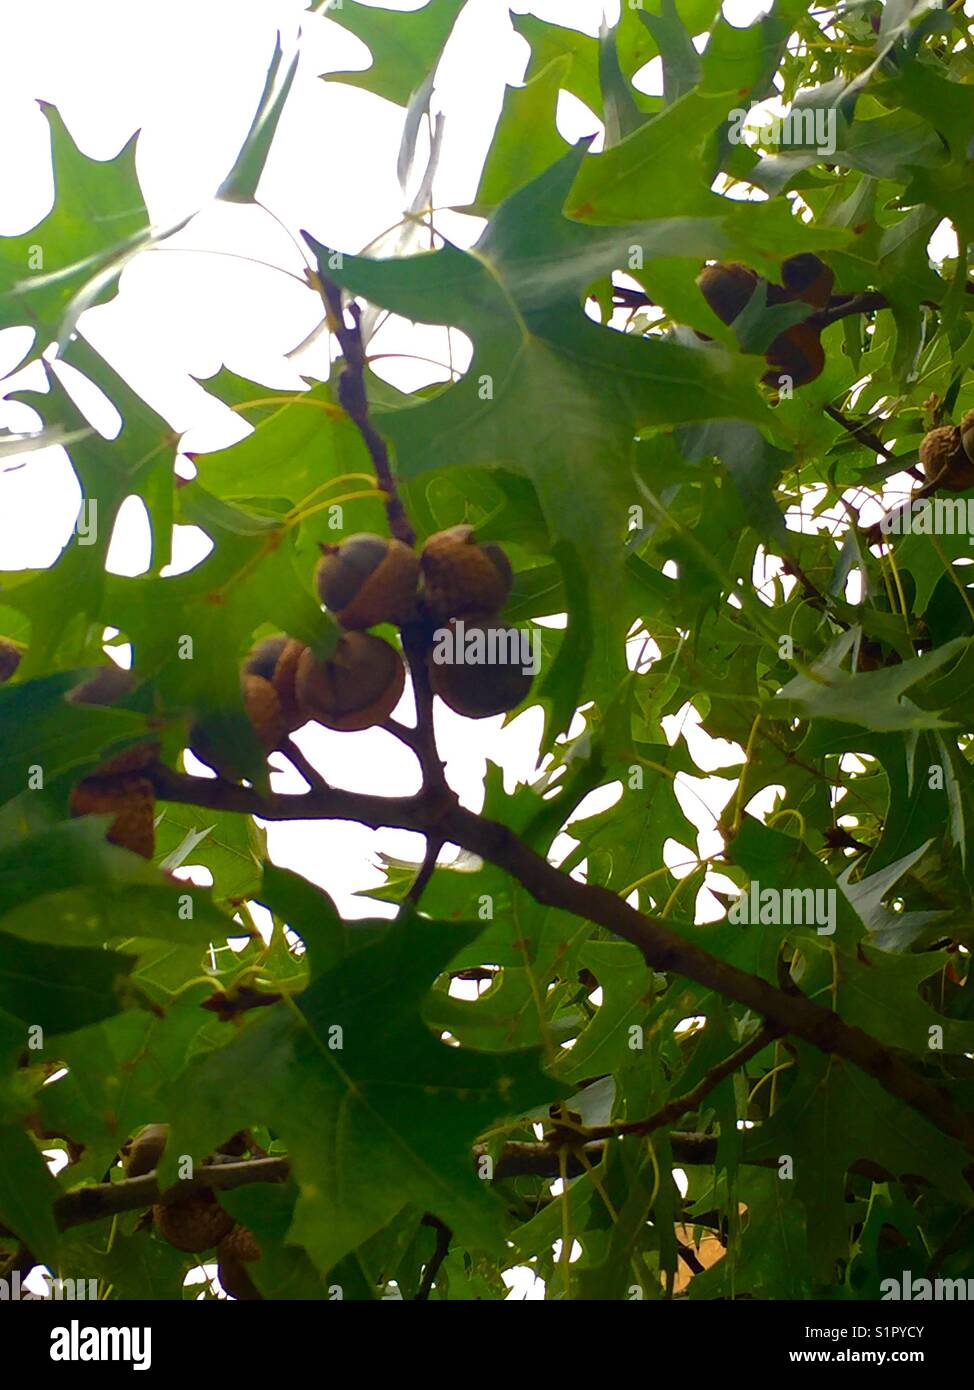 From an acorn a mighty oak grows, clusters of acorns on oak branches - Stock Image